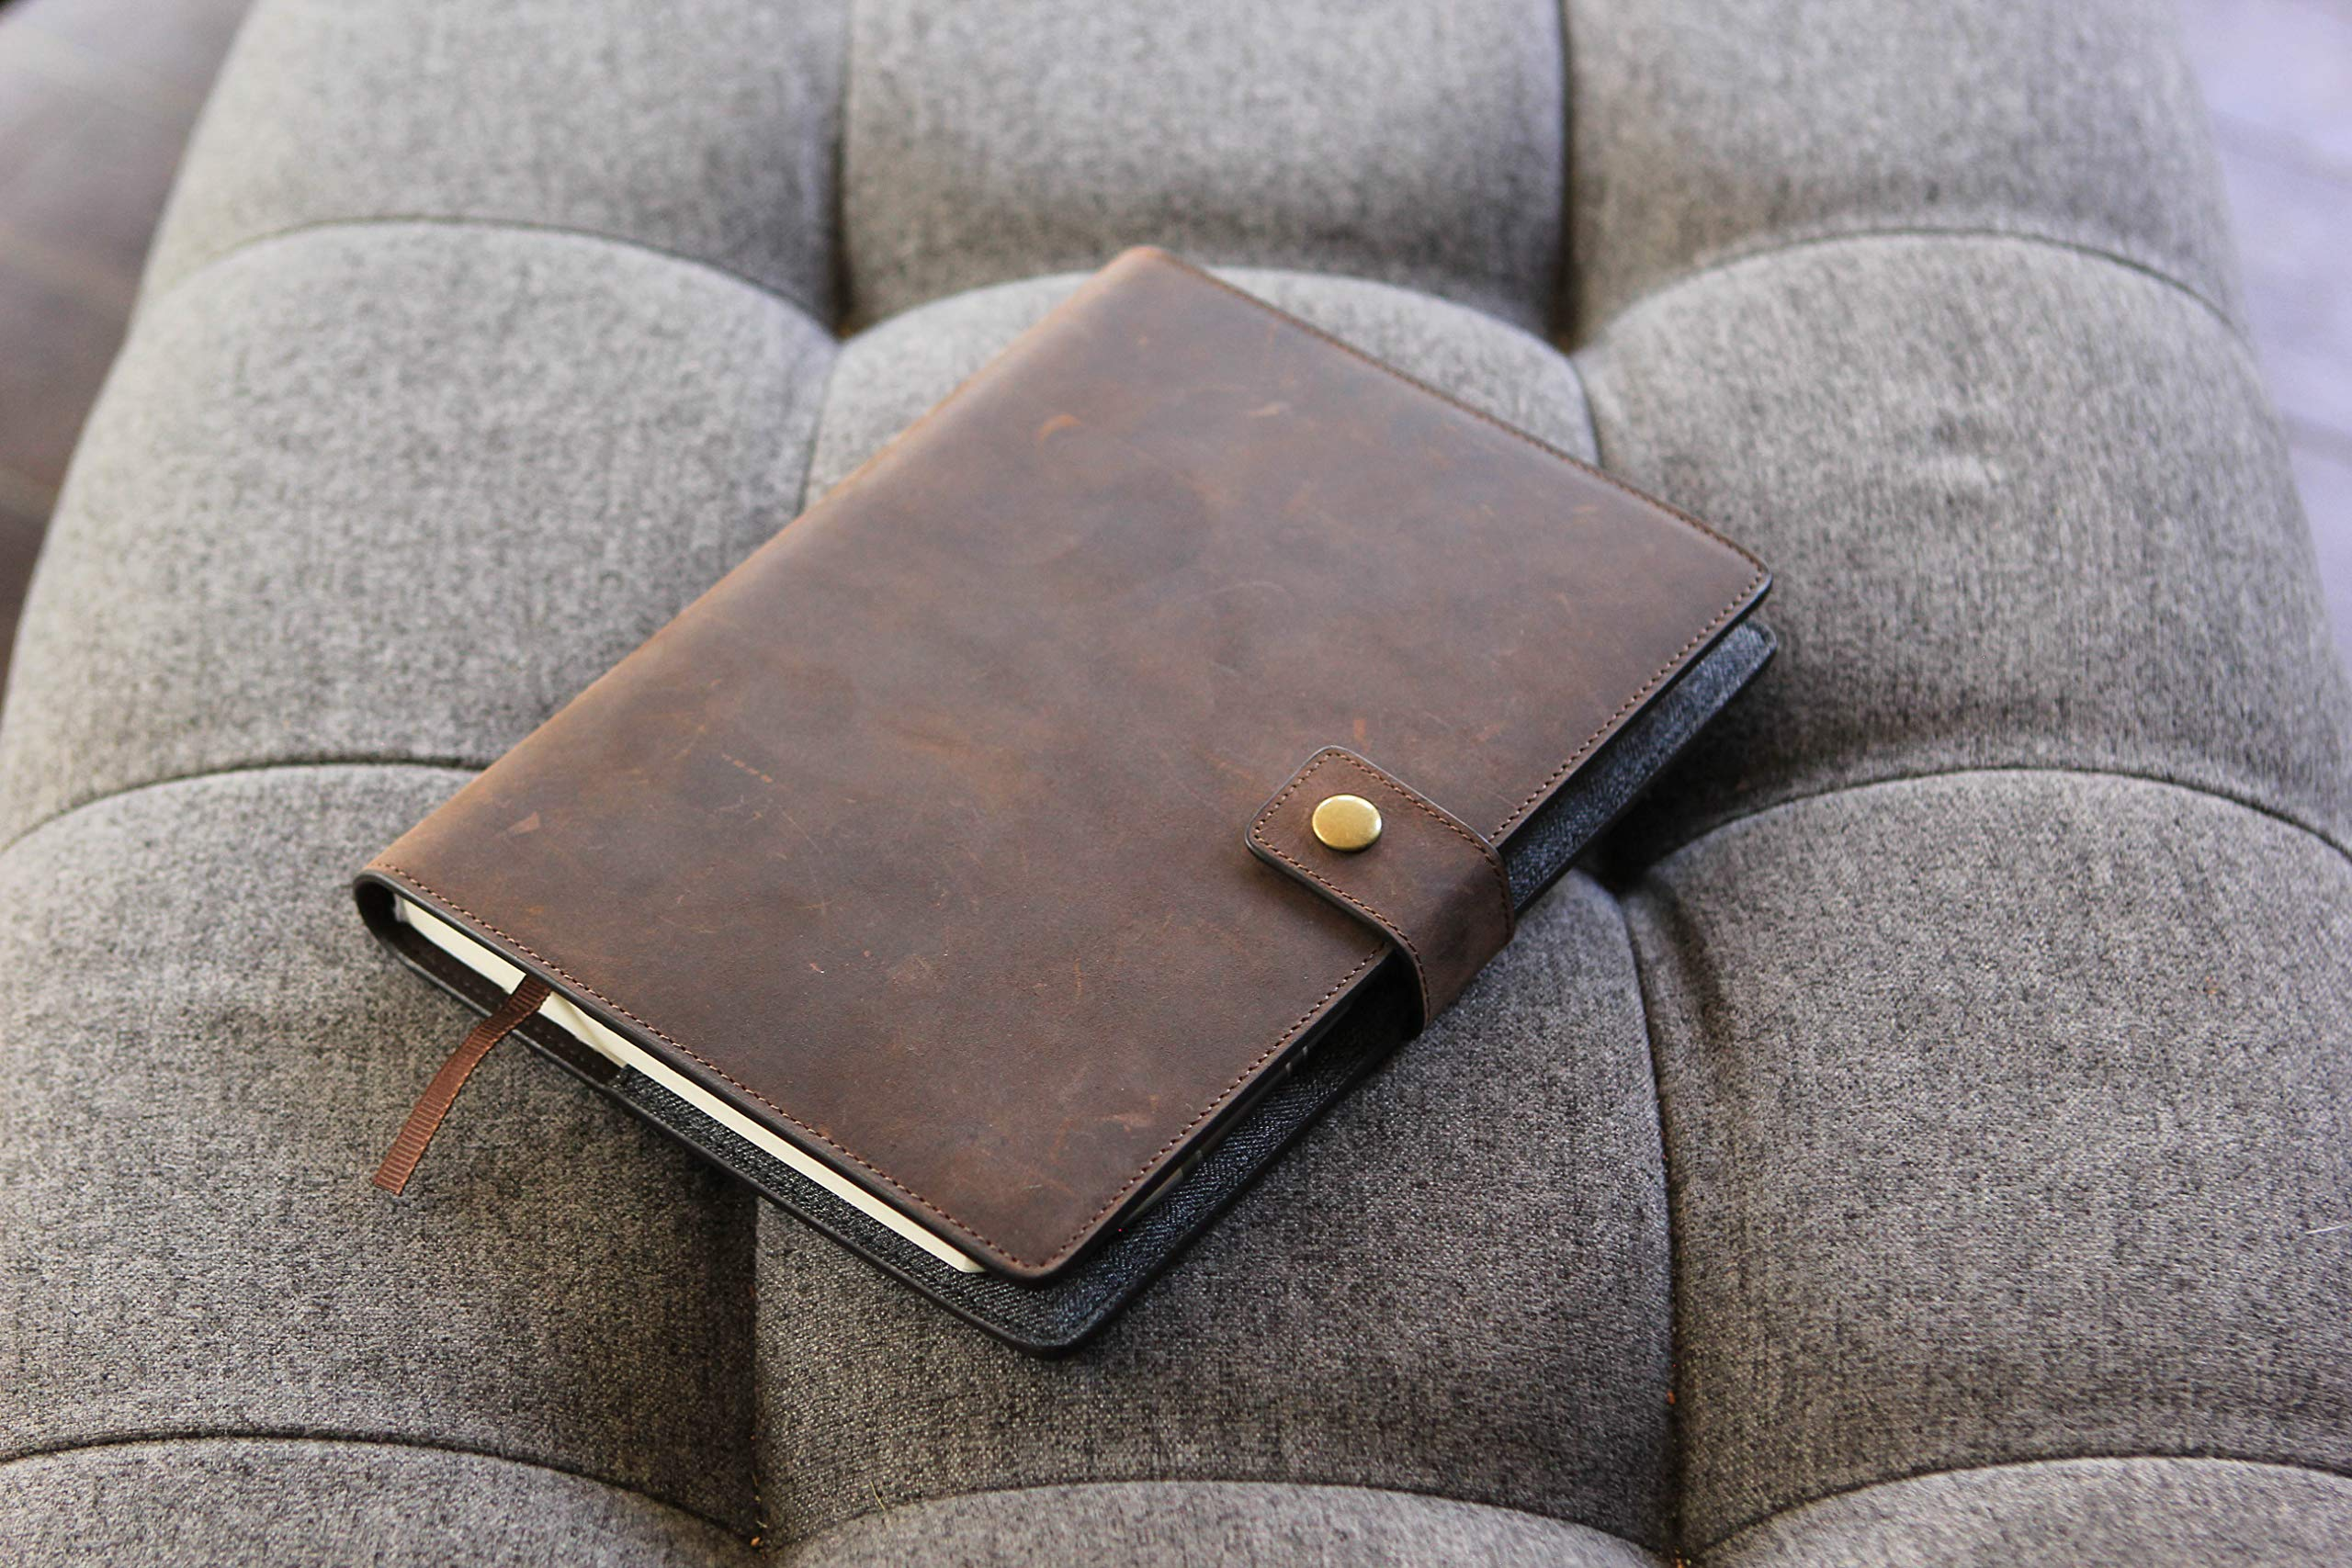 CASE ELEGANCE Full Grain Premium Leather Refillable Journal Cover with A5 Lined Notebook, Pen Loop, Card Slots, & Brass Snap by CASE ELEGANCE (Image #5)